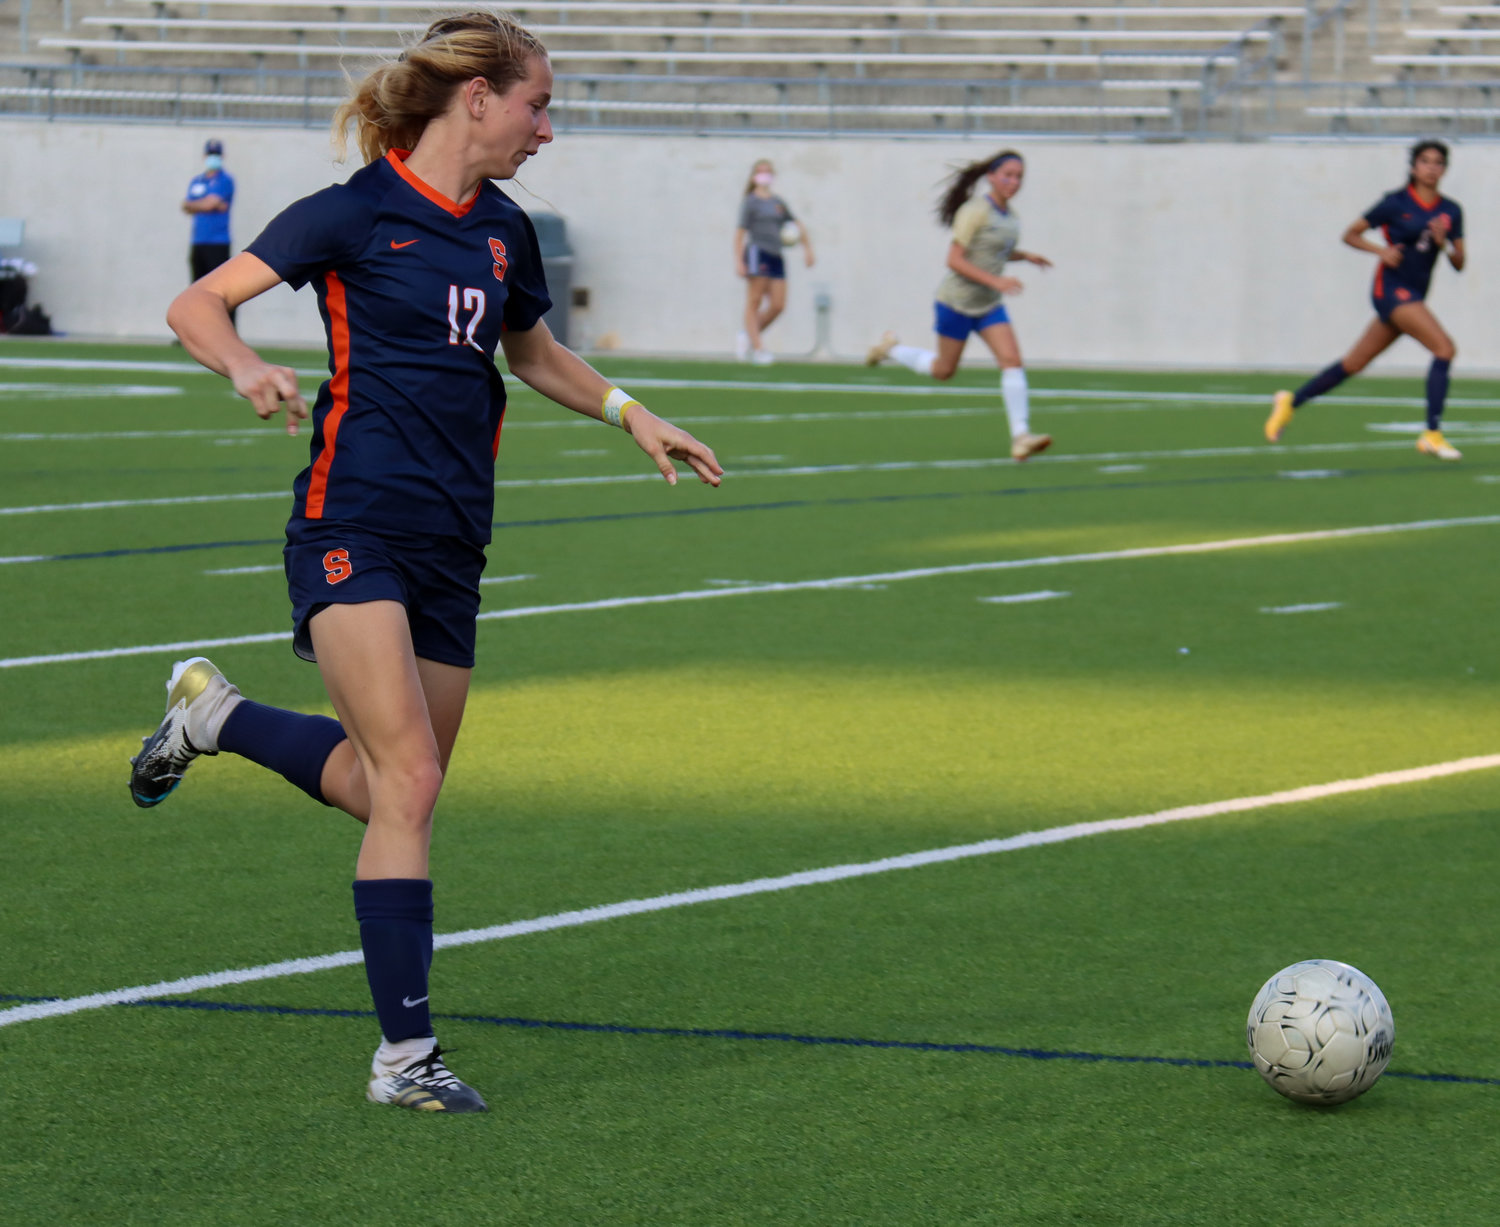 Seven Lakes senior forward Paige Boucher attacks downfield against an Elkins defender during the Spartans' 7-0 Class 6A bi-district playoff win on Friday, March 26, at Legacy Stadium.